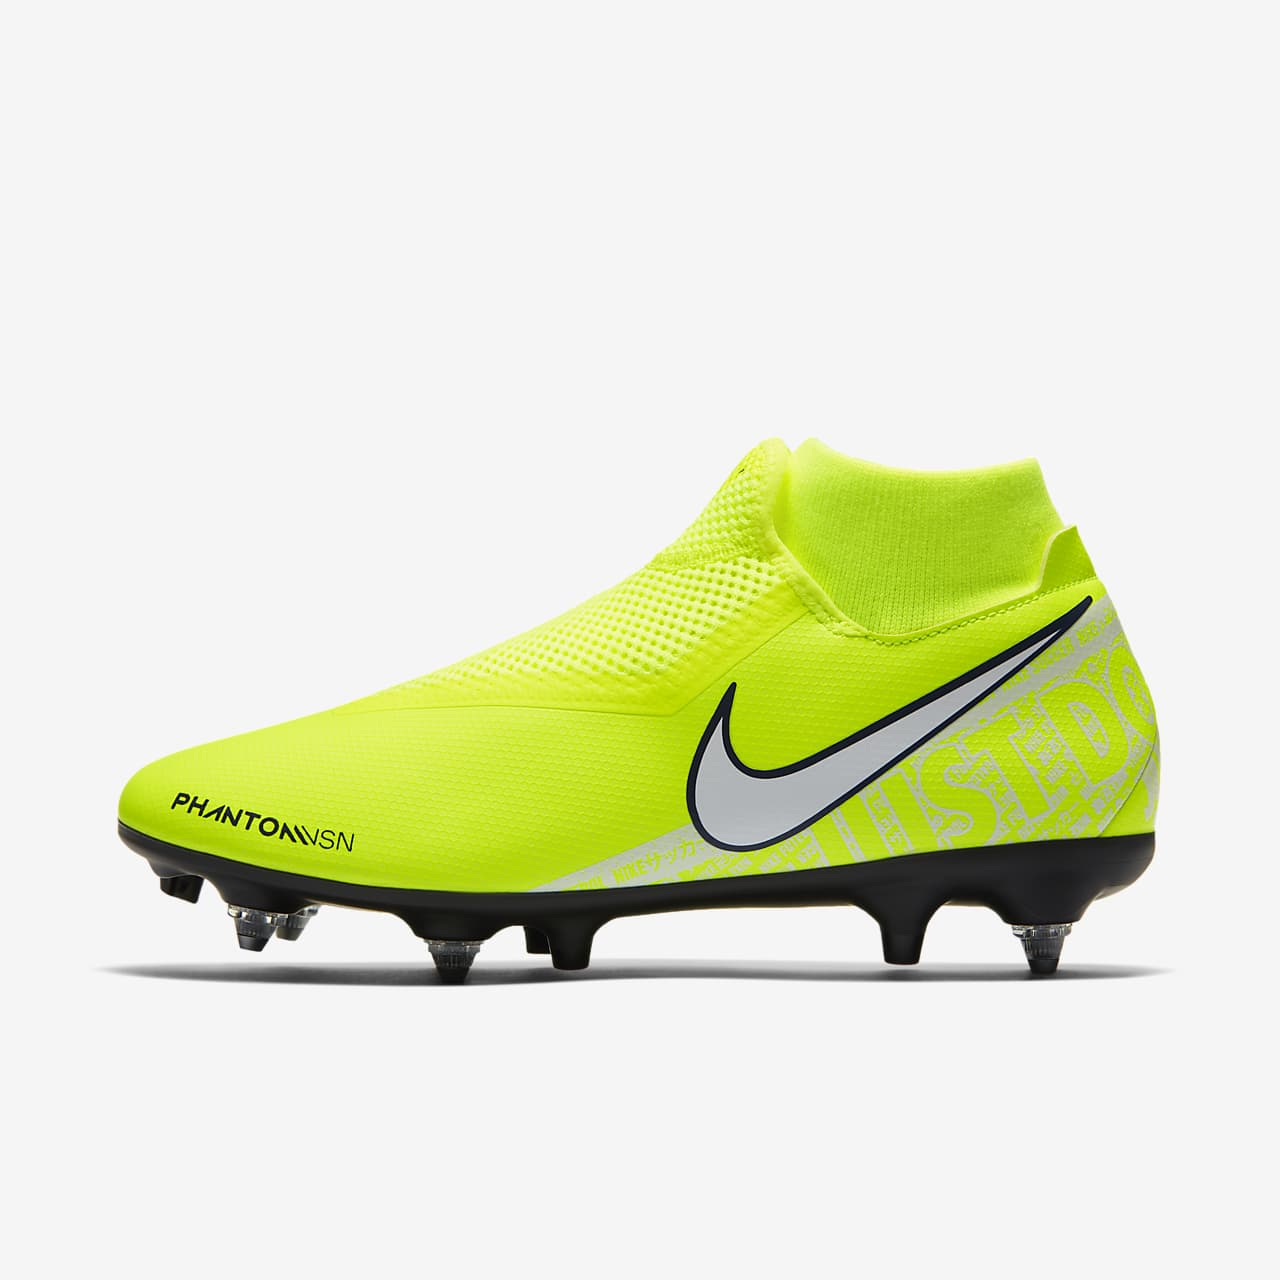 Nike PhantomVSN Academy Dynamic Fit SG-Pro Anti-Clog Traction Botes de futbol per a terreny tou